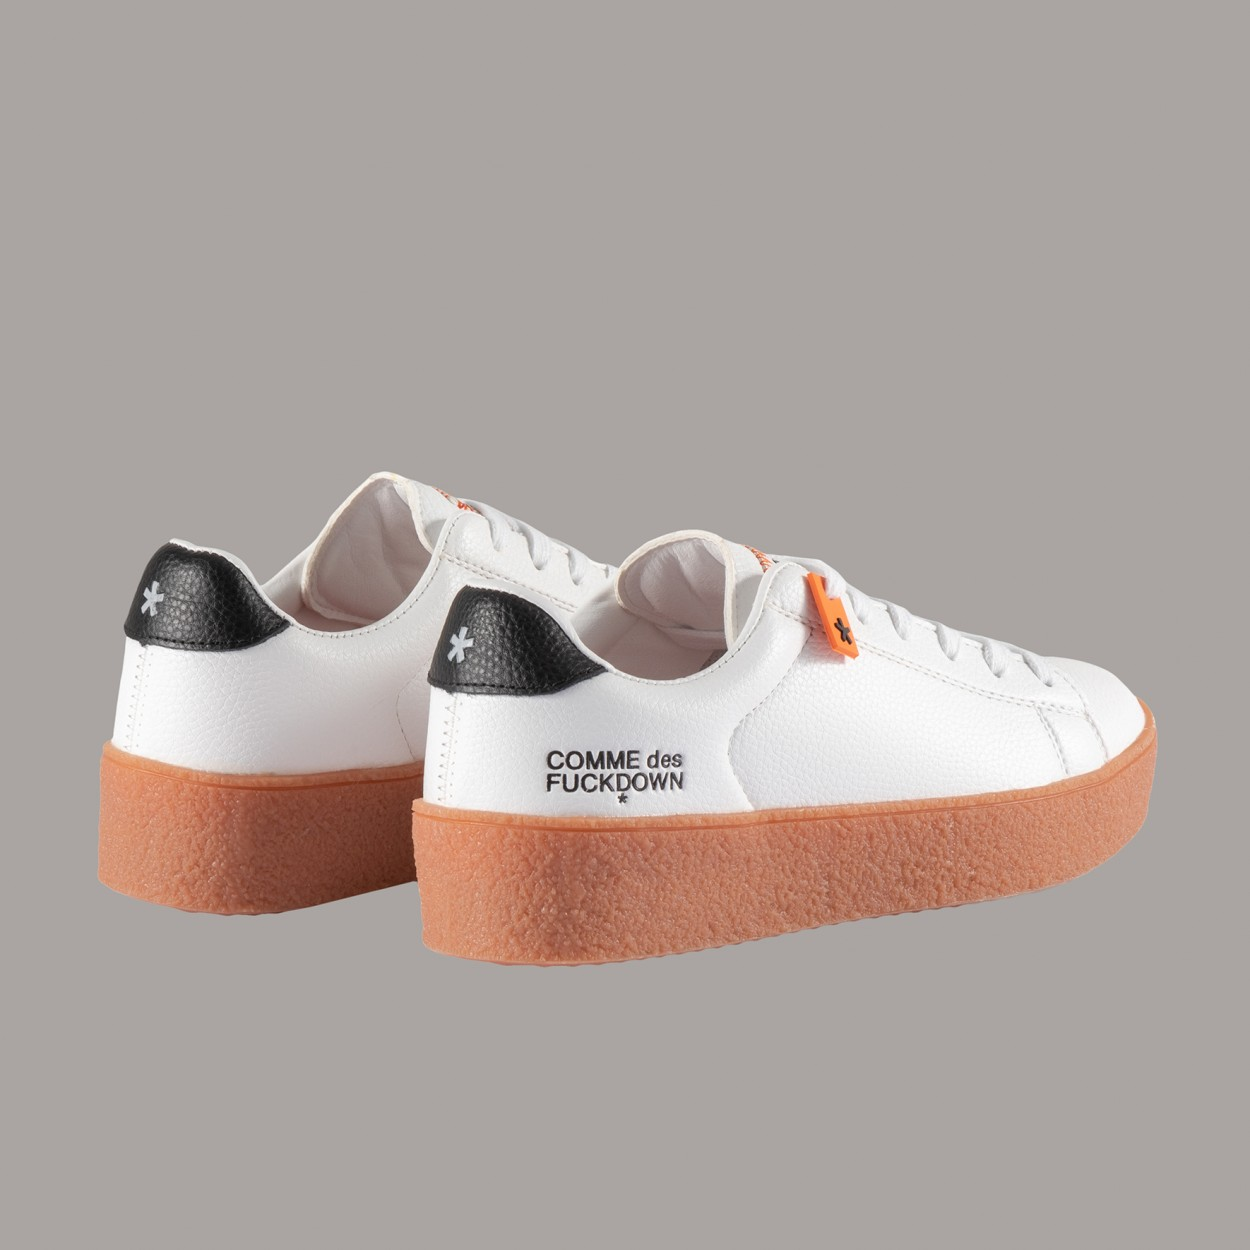 SNEAKER - CDF04STREETBC - COMME DES FKDOWN